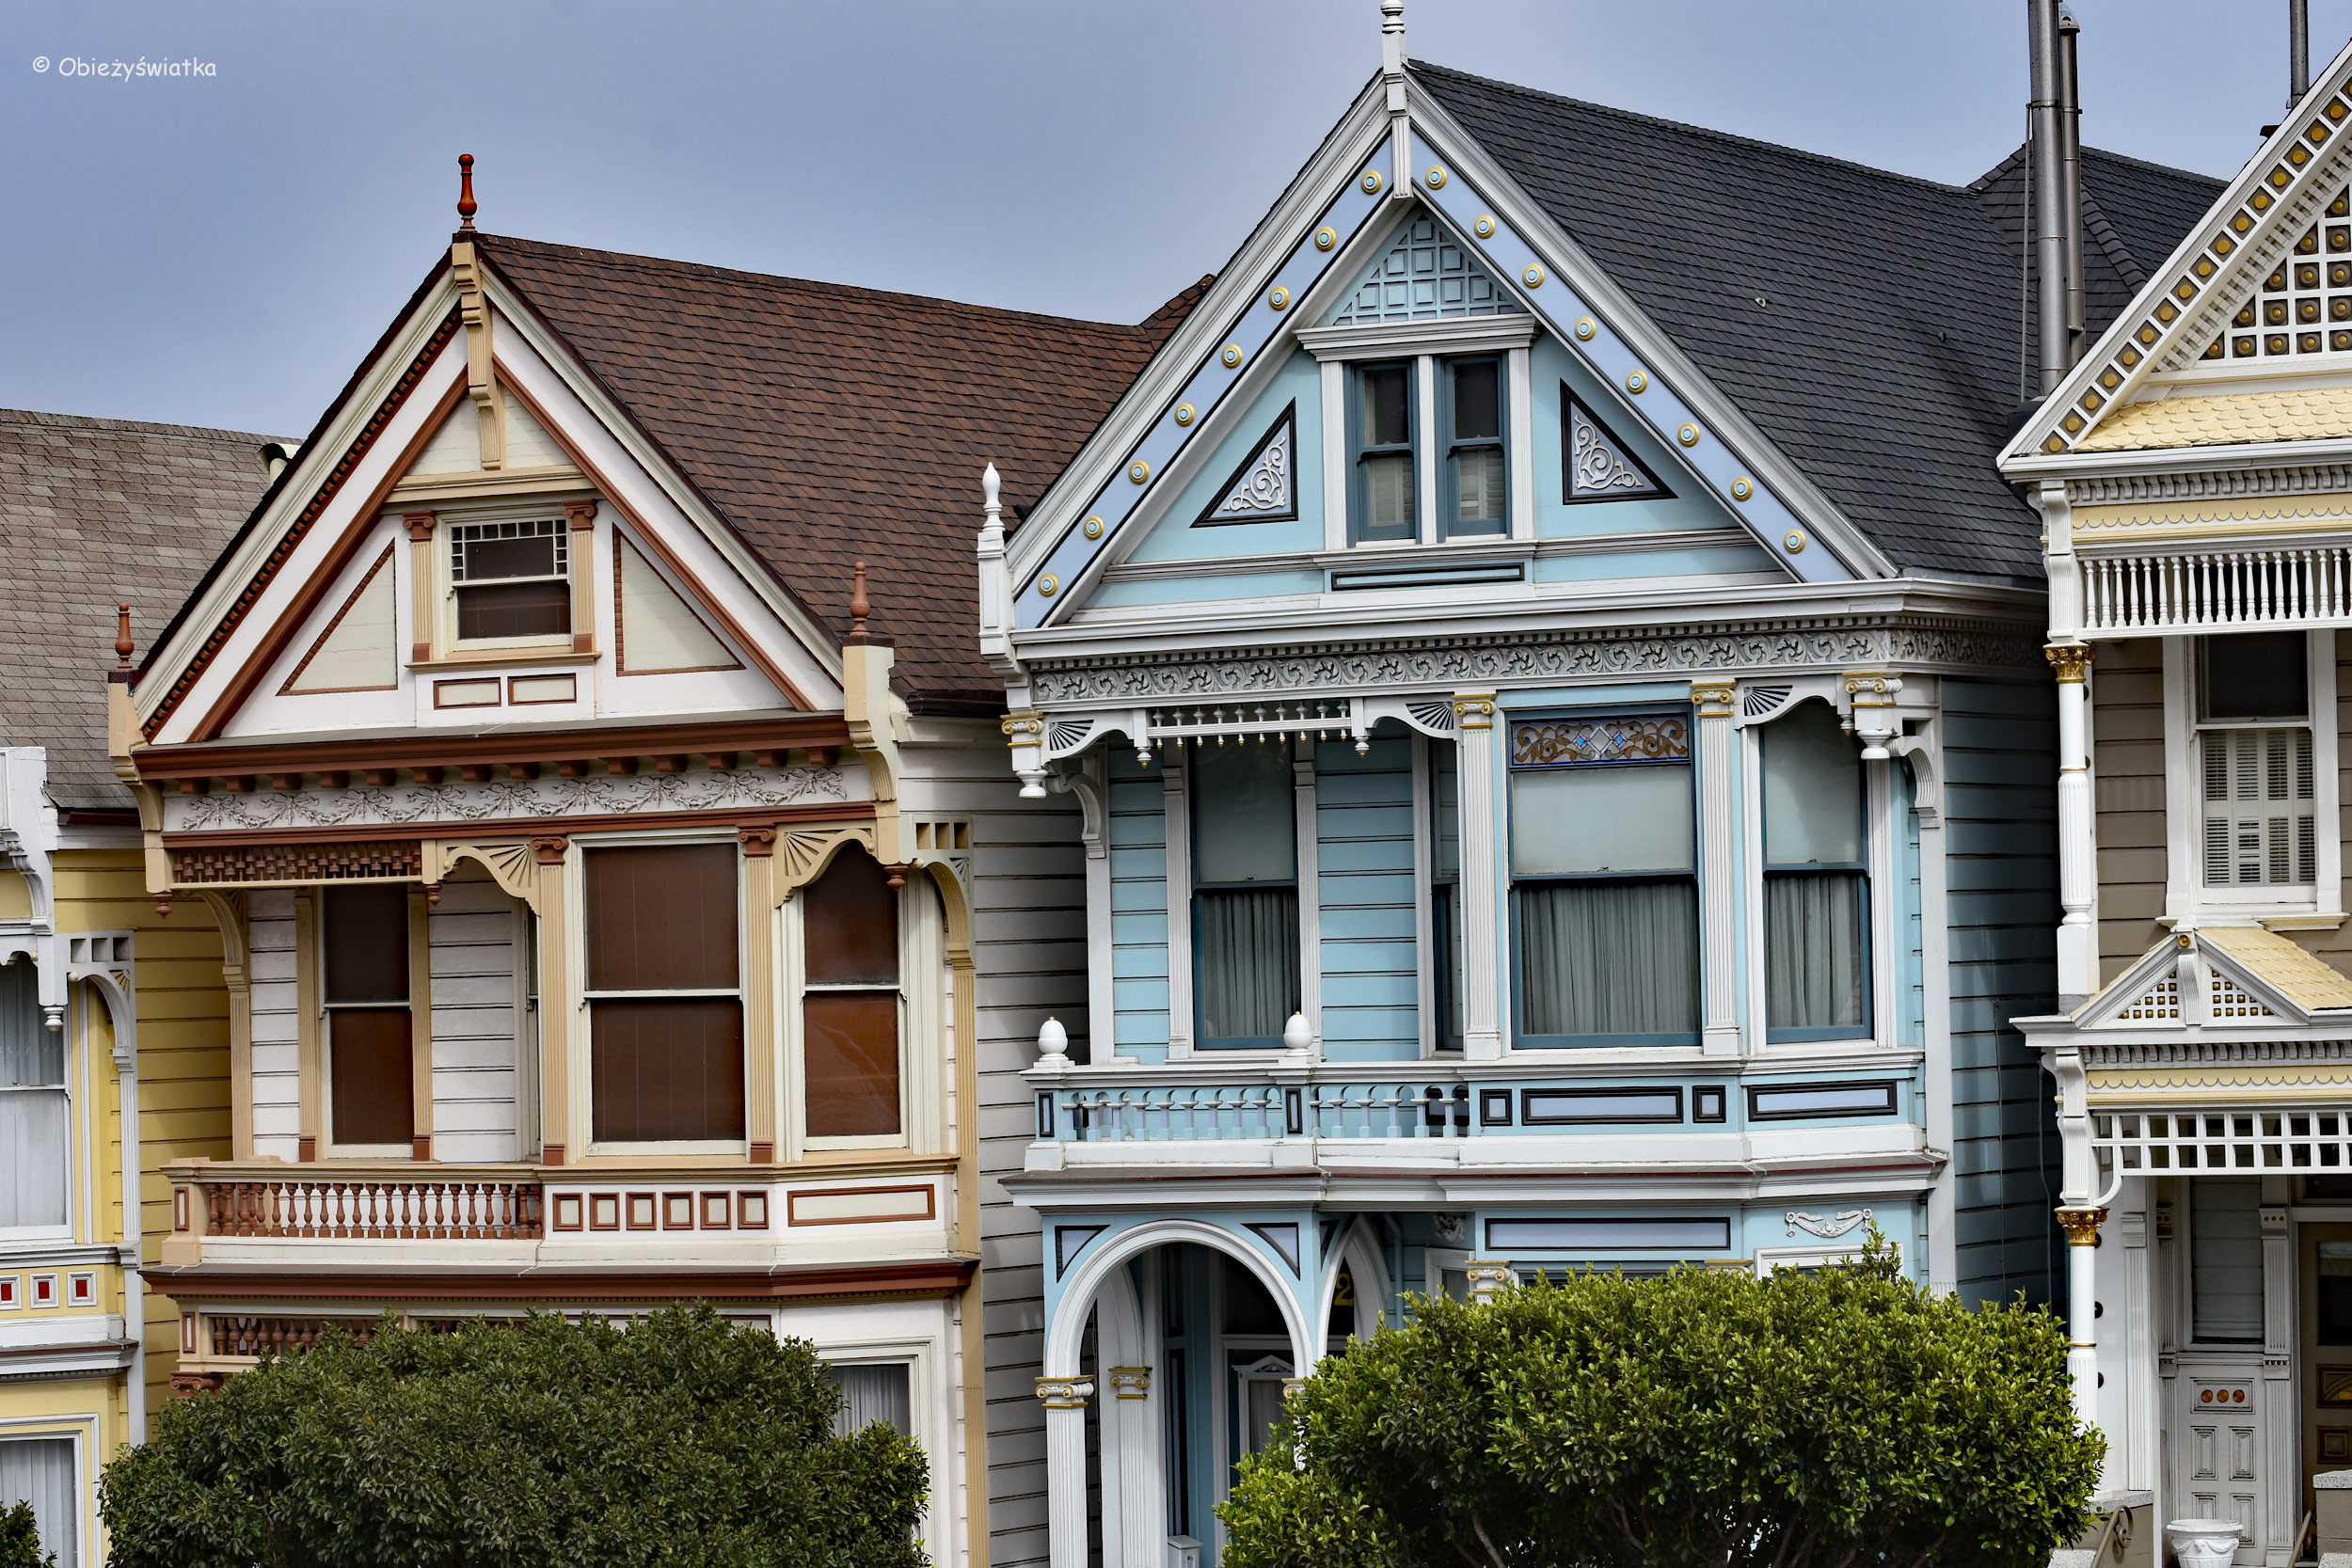 Painted Ladies, czyli Malowane Damy w San Francisco